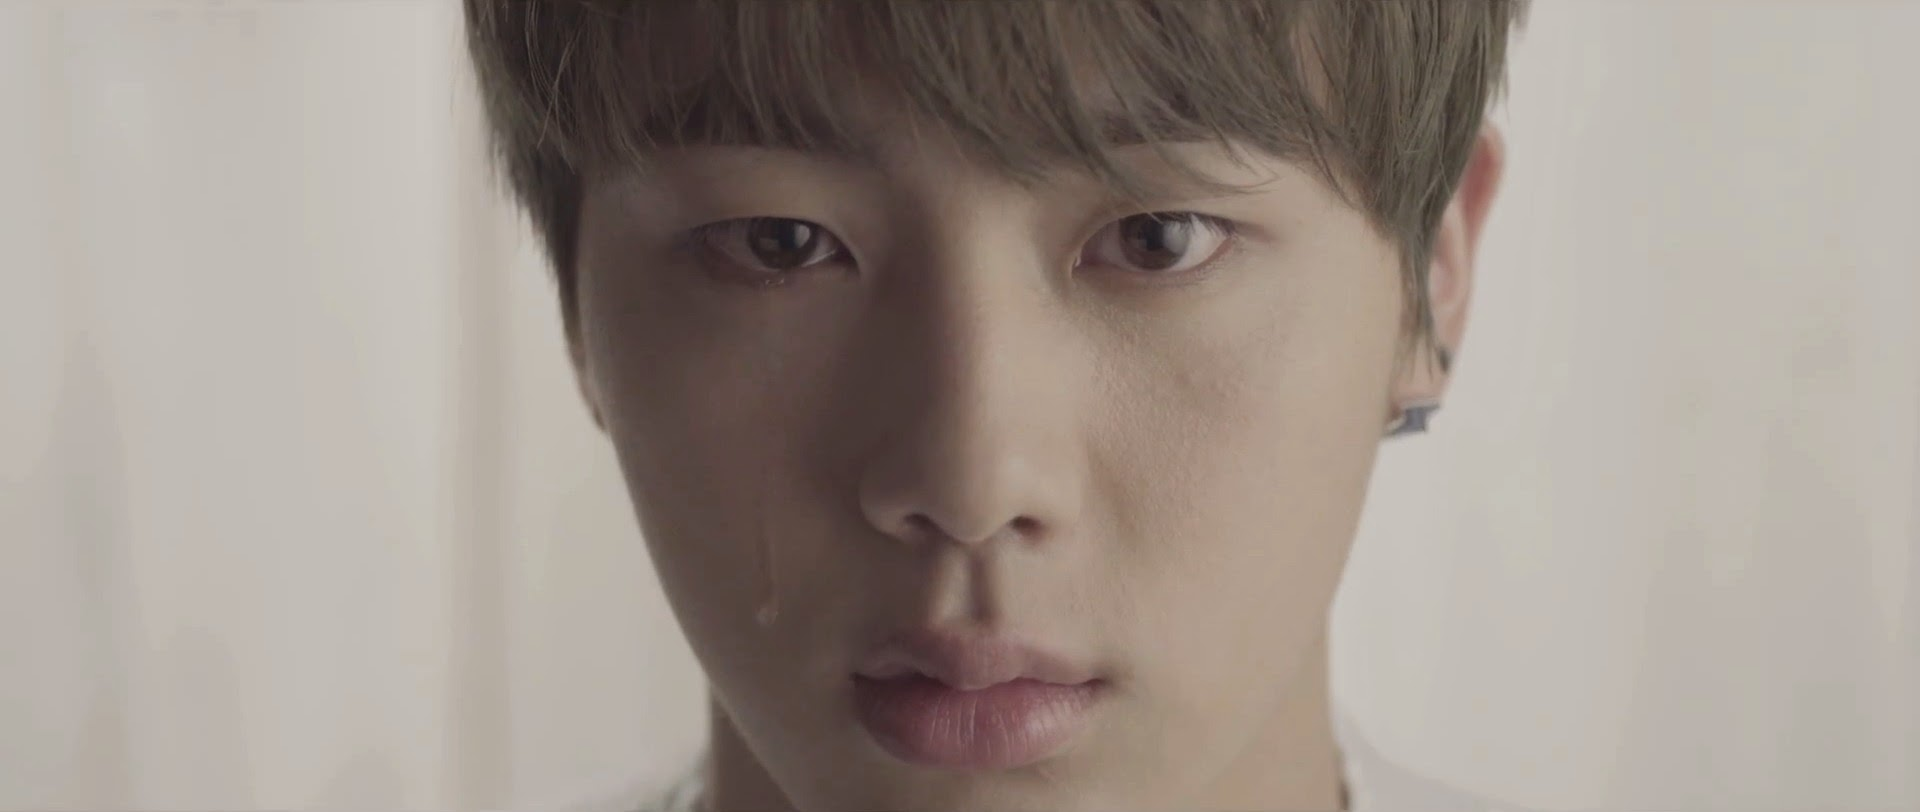 Bangtan's Jin in I Need You MV